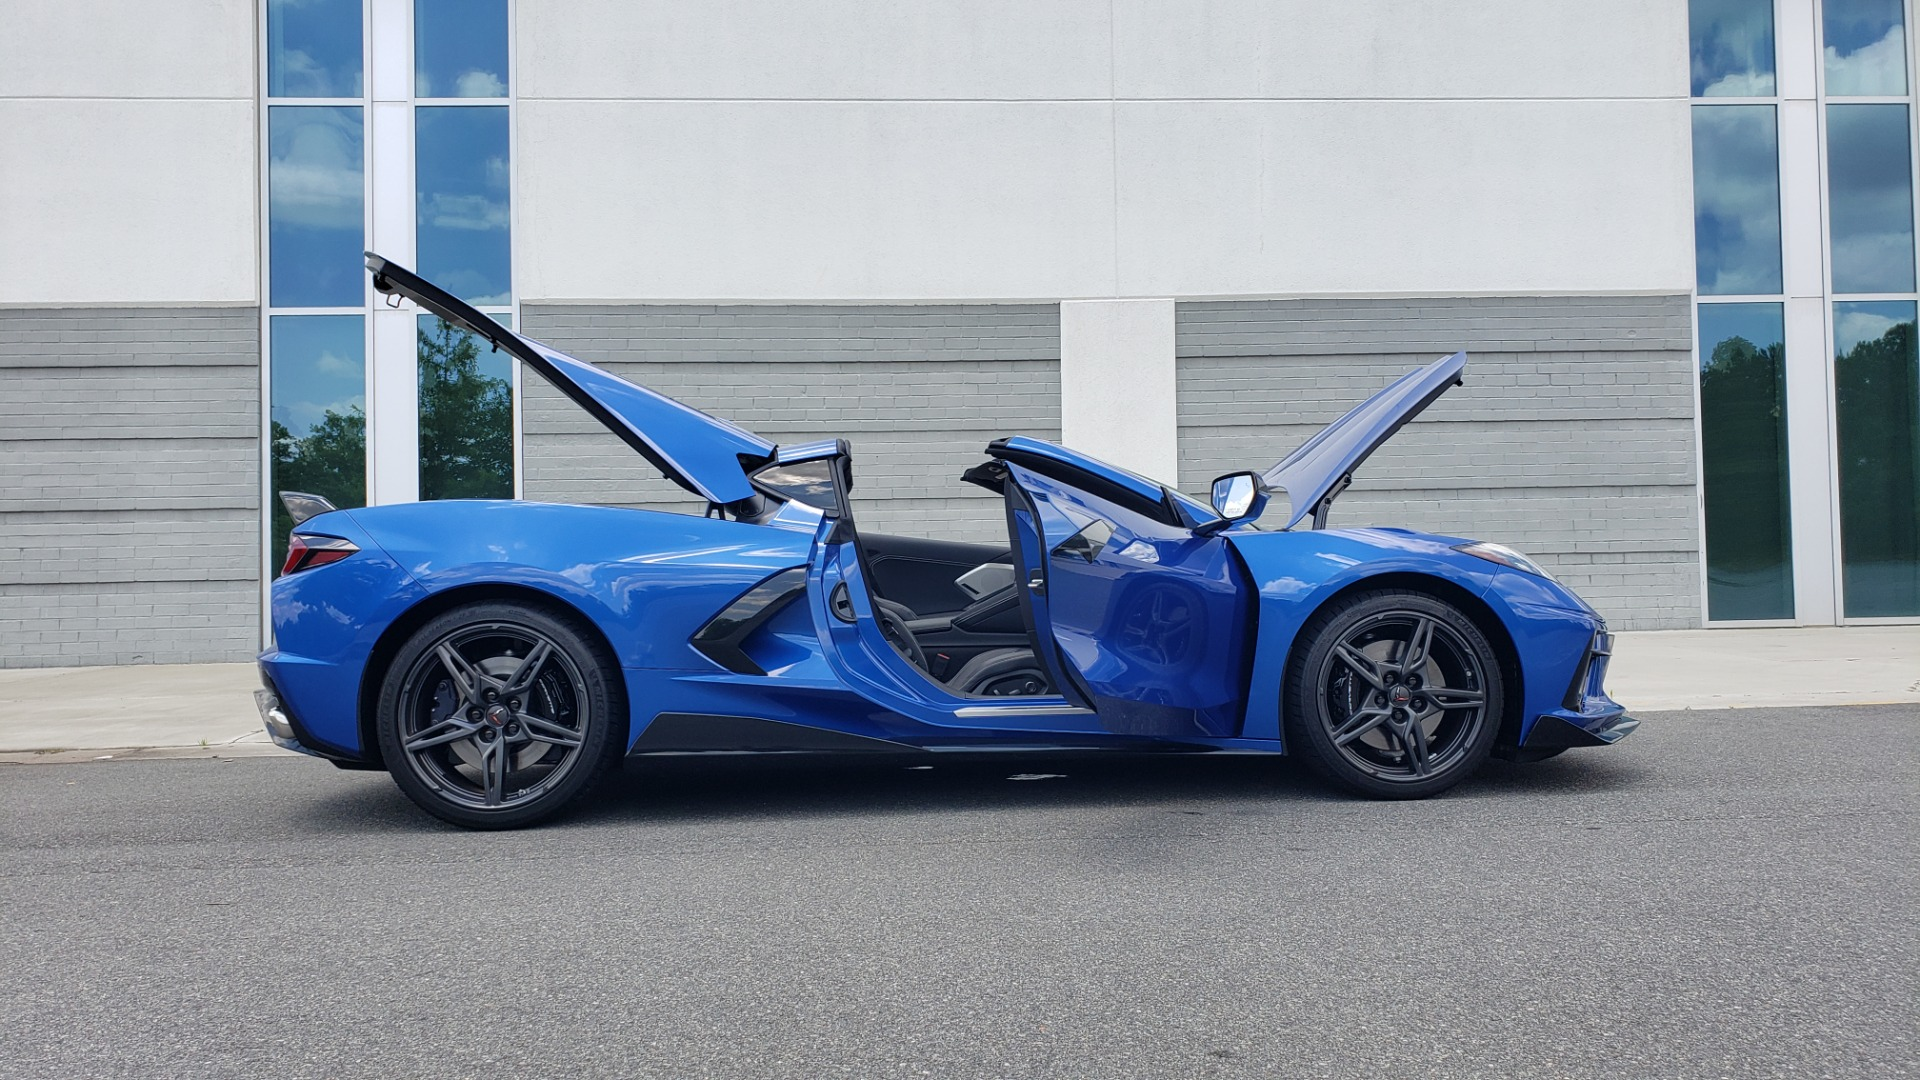 Used 2020 Chevrolet CORVETTE C8 STINGRAY COUPE 2LT / PERF & Z51 PKG / NAV / BOSE / 8-SPD AUTO / REARVIEW for sale Sold at Formula Imports in Charlotte NC 28227 17